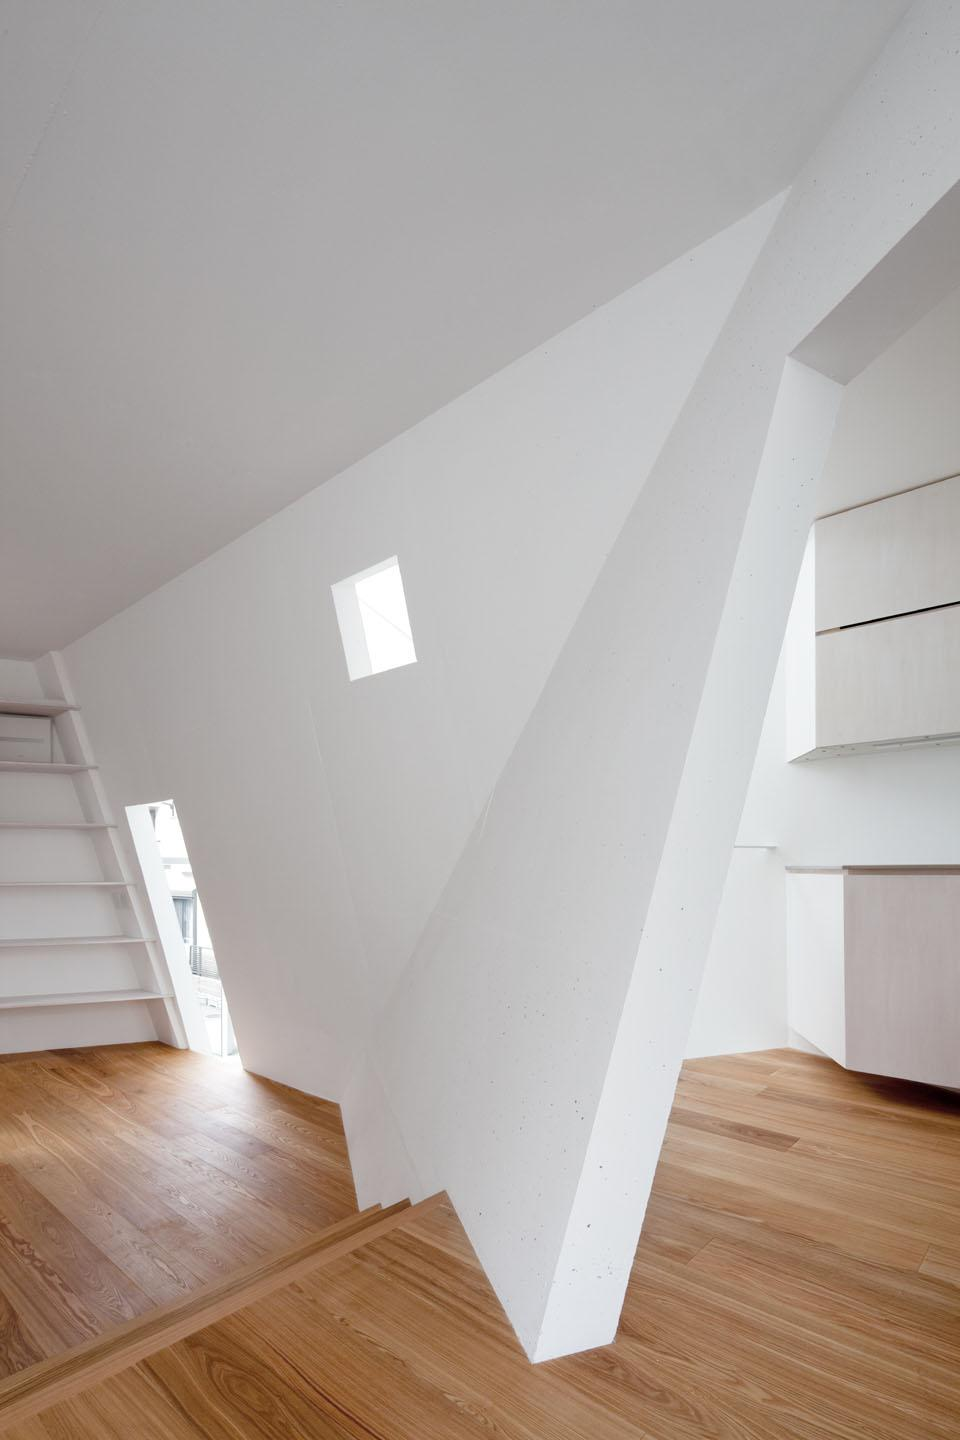 House Folded by Alphaville in Osaka, Japan. Courtesy Alphaville © Kai Nakamura